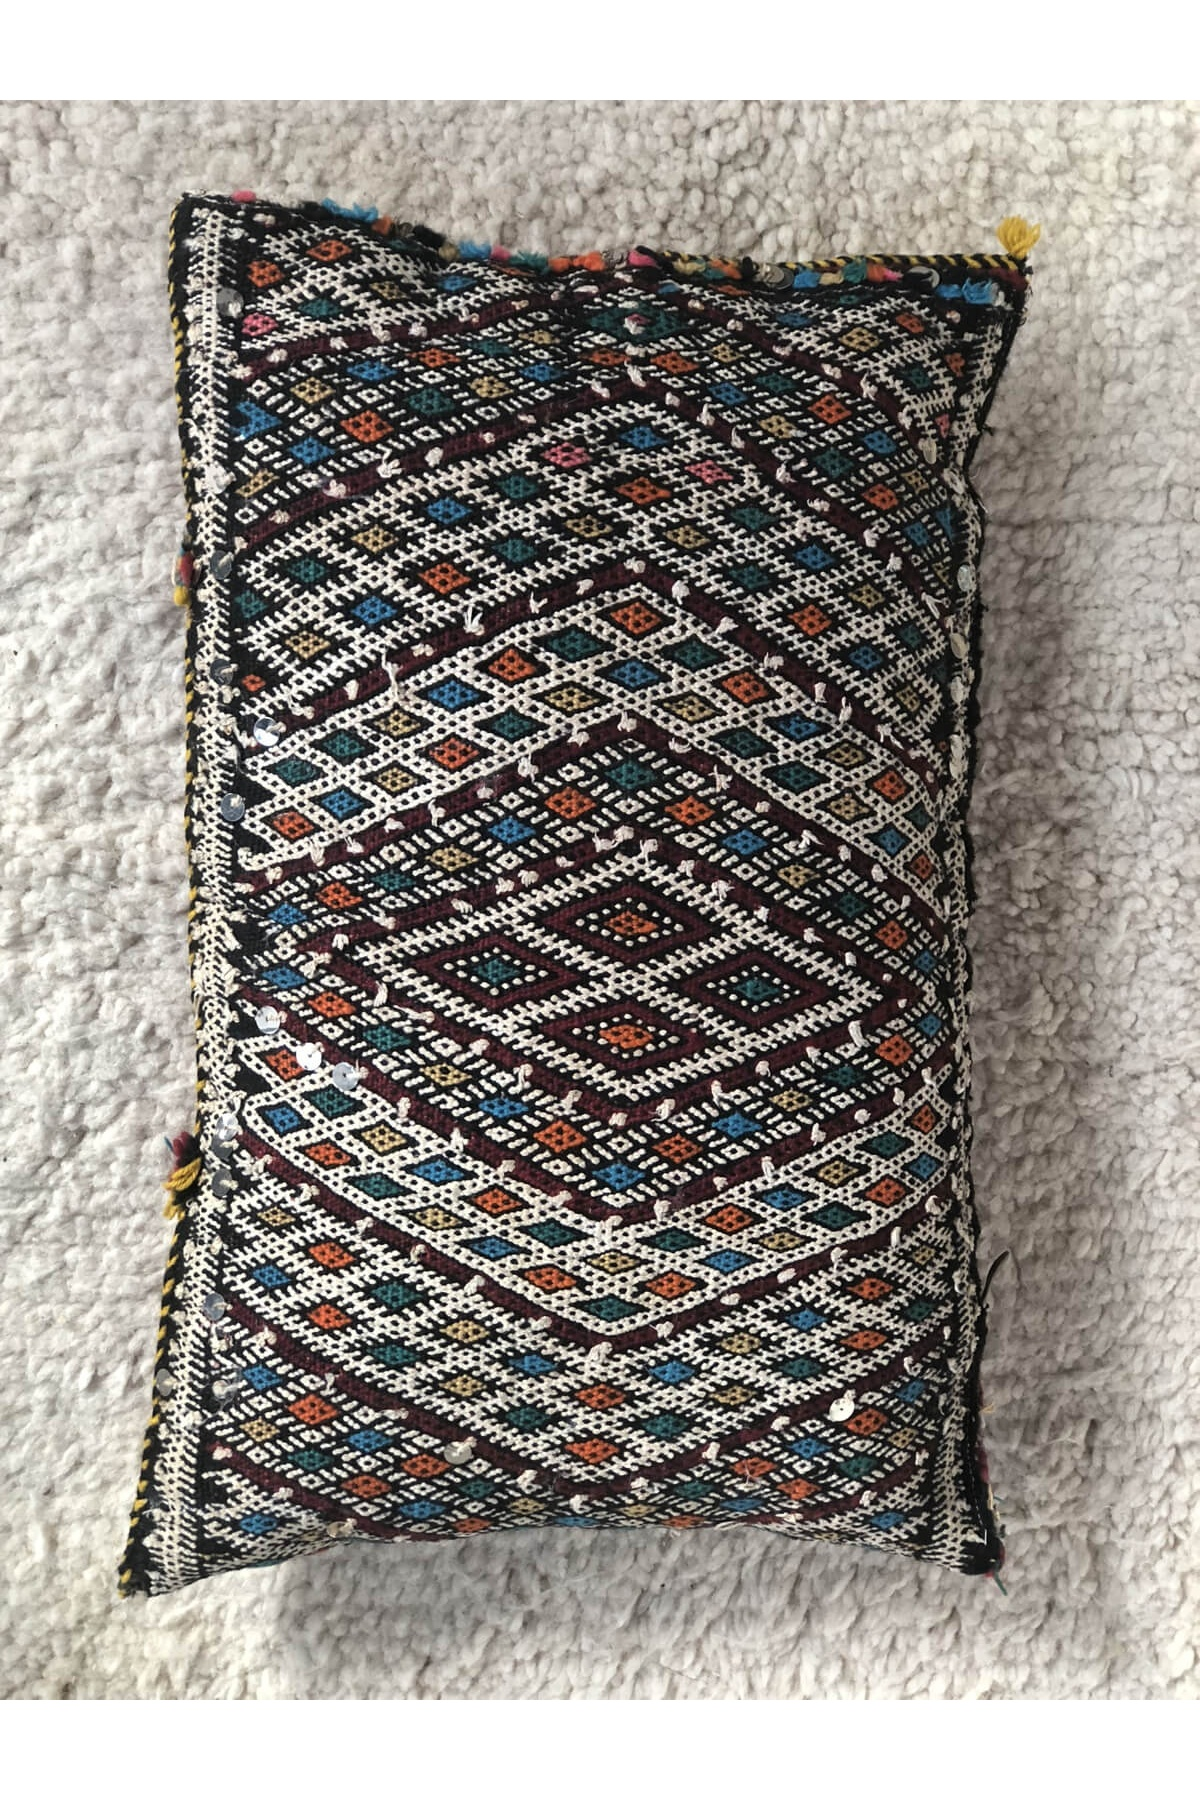 MAROCAN Coussin